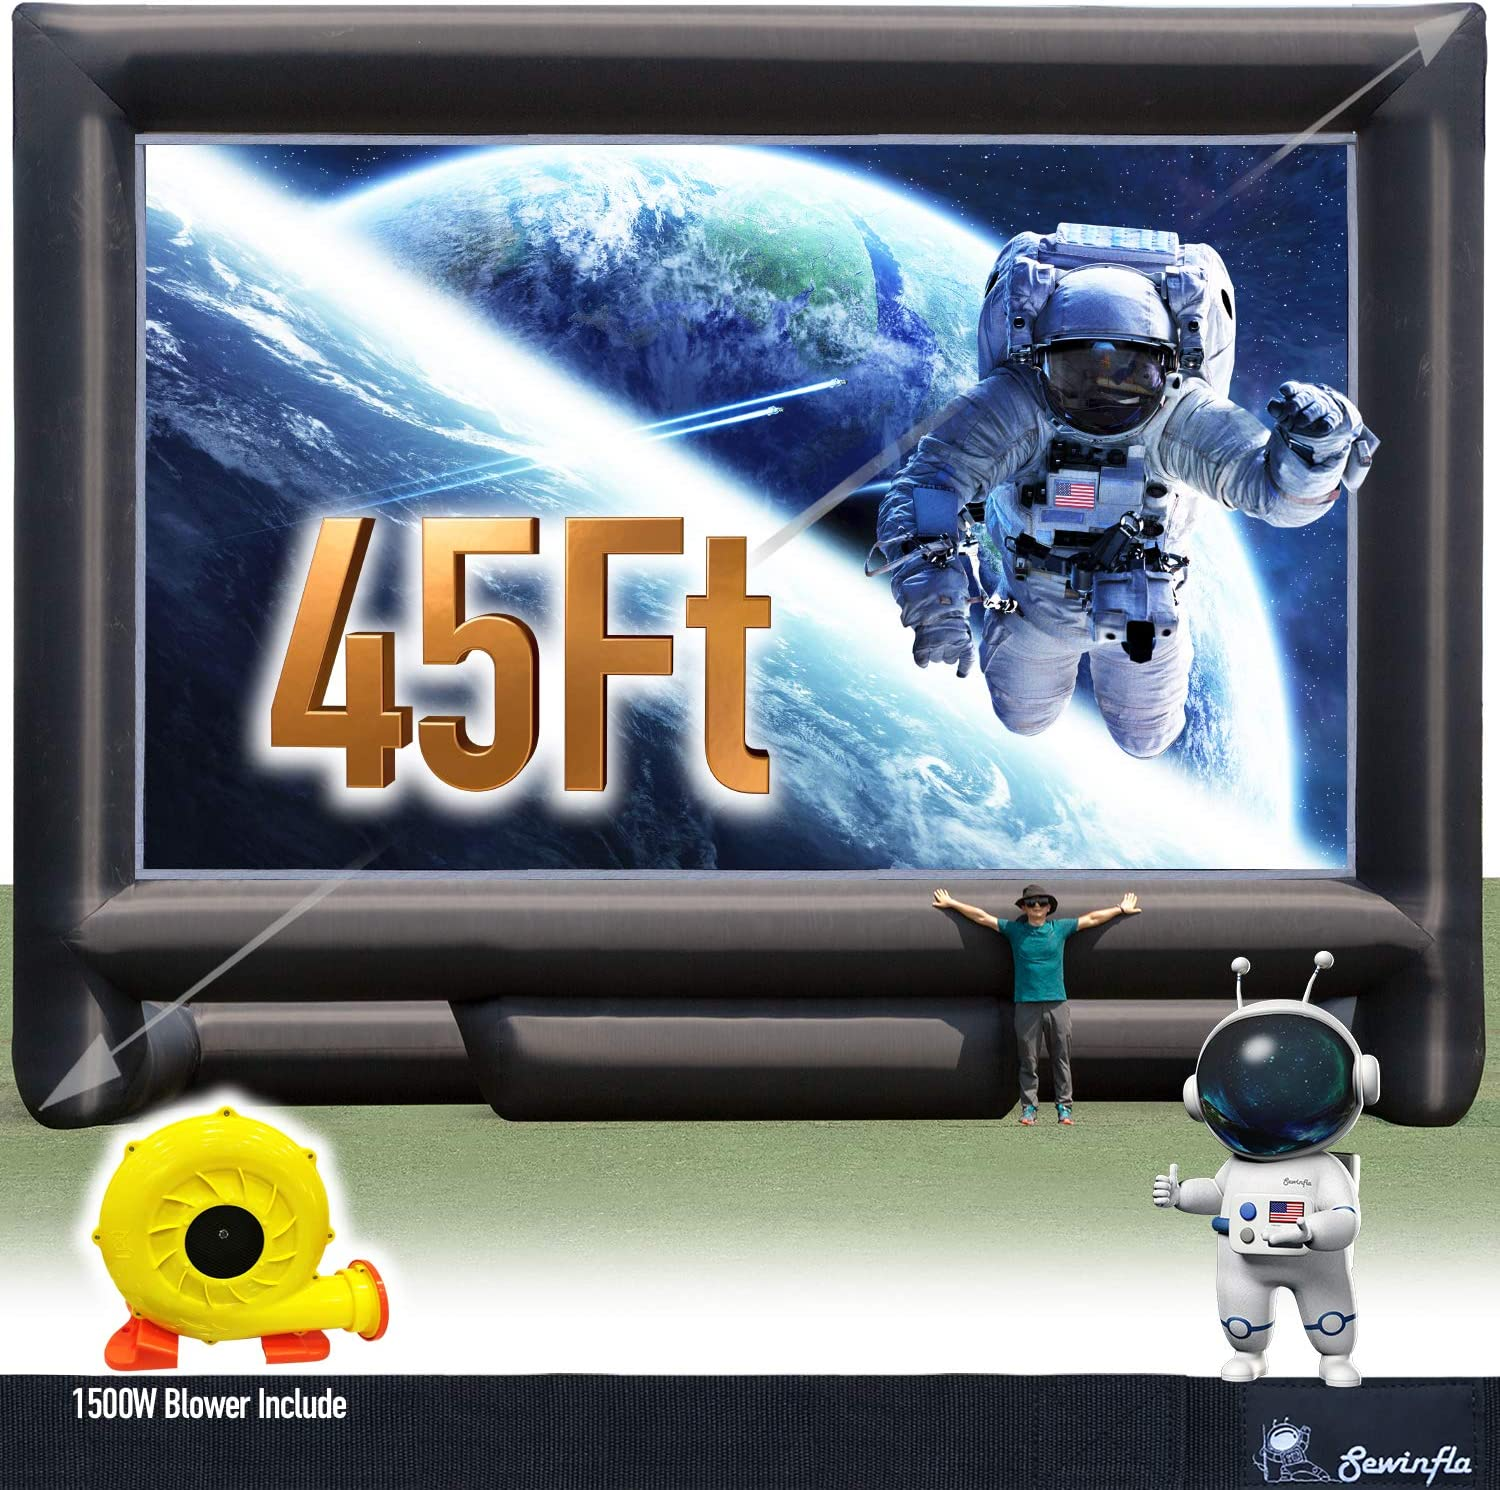 Sewinfla 45Ft Ranking TOP5 Giant Inflatable Movie B Portable Outdoor - National products Screen